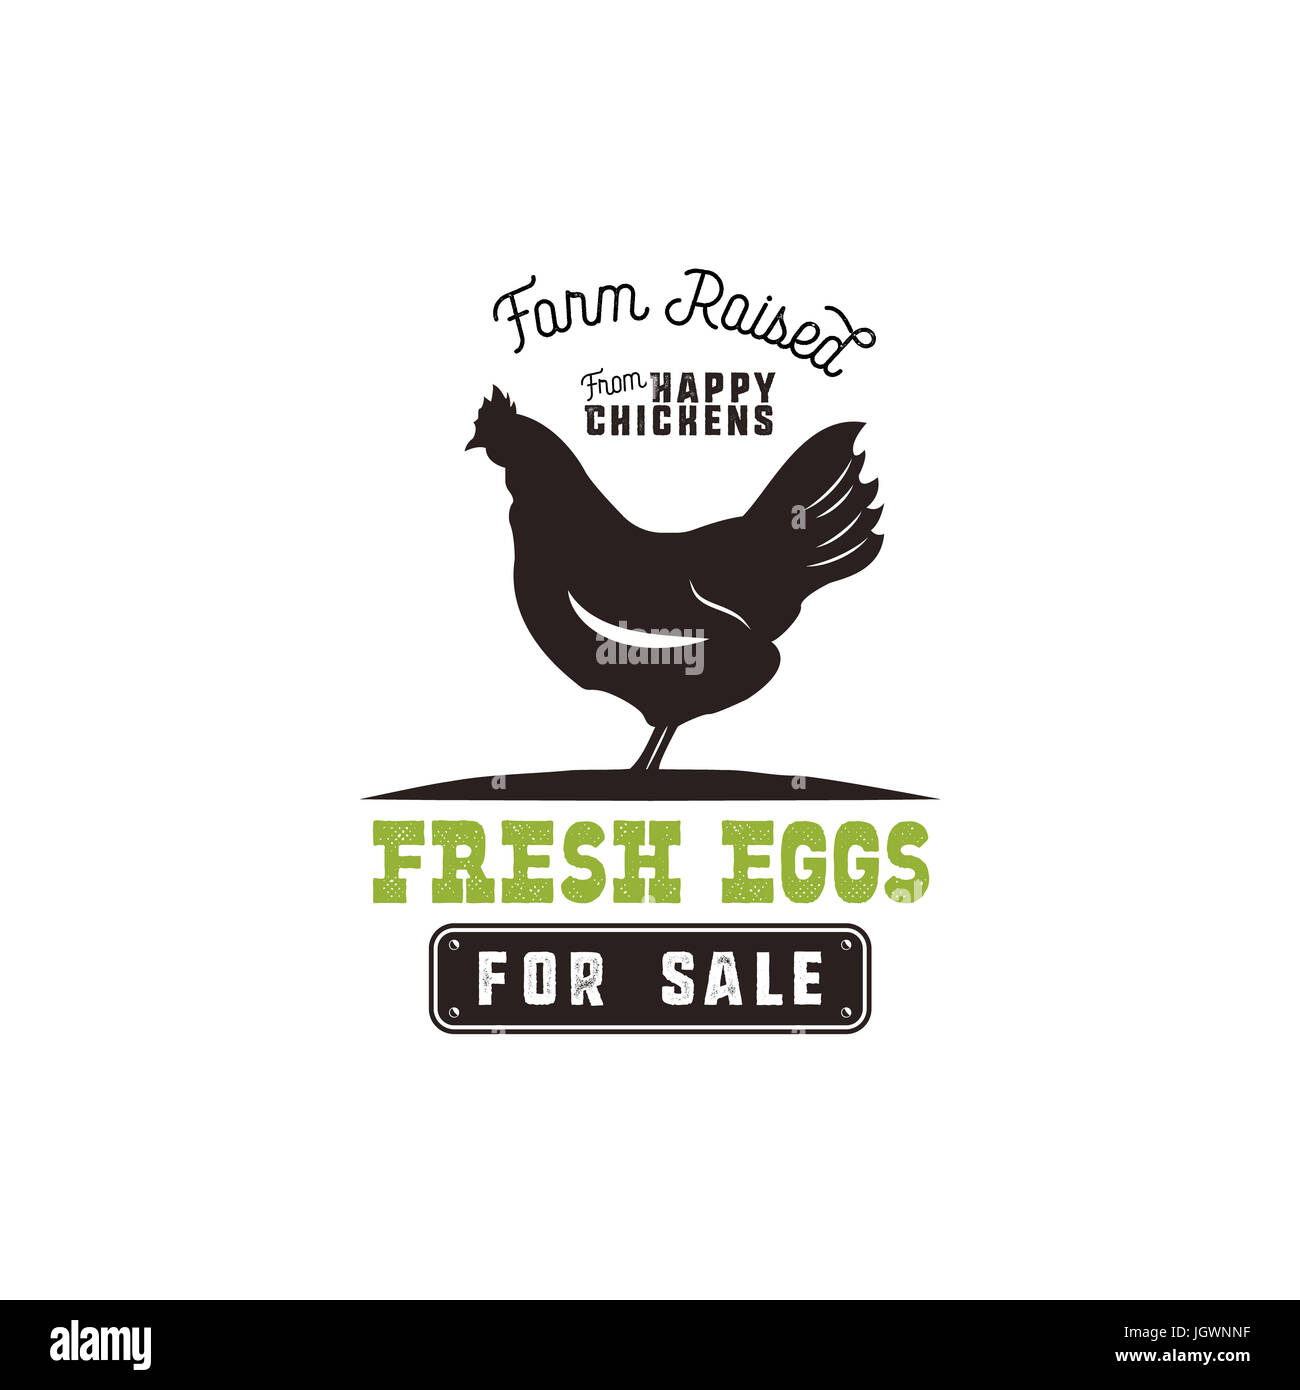 Farm Fresh Eggs Poster Vintage Rustic Emblem With Chicken Retro Typography Style Black And Green Design Isolated On White Background